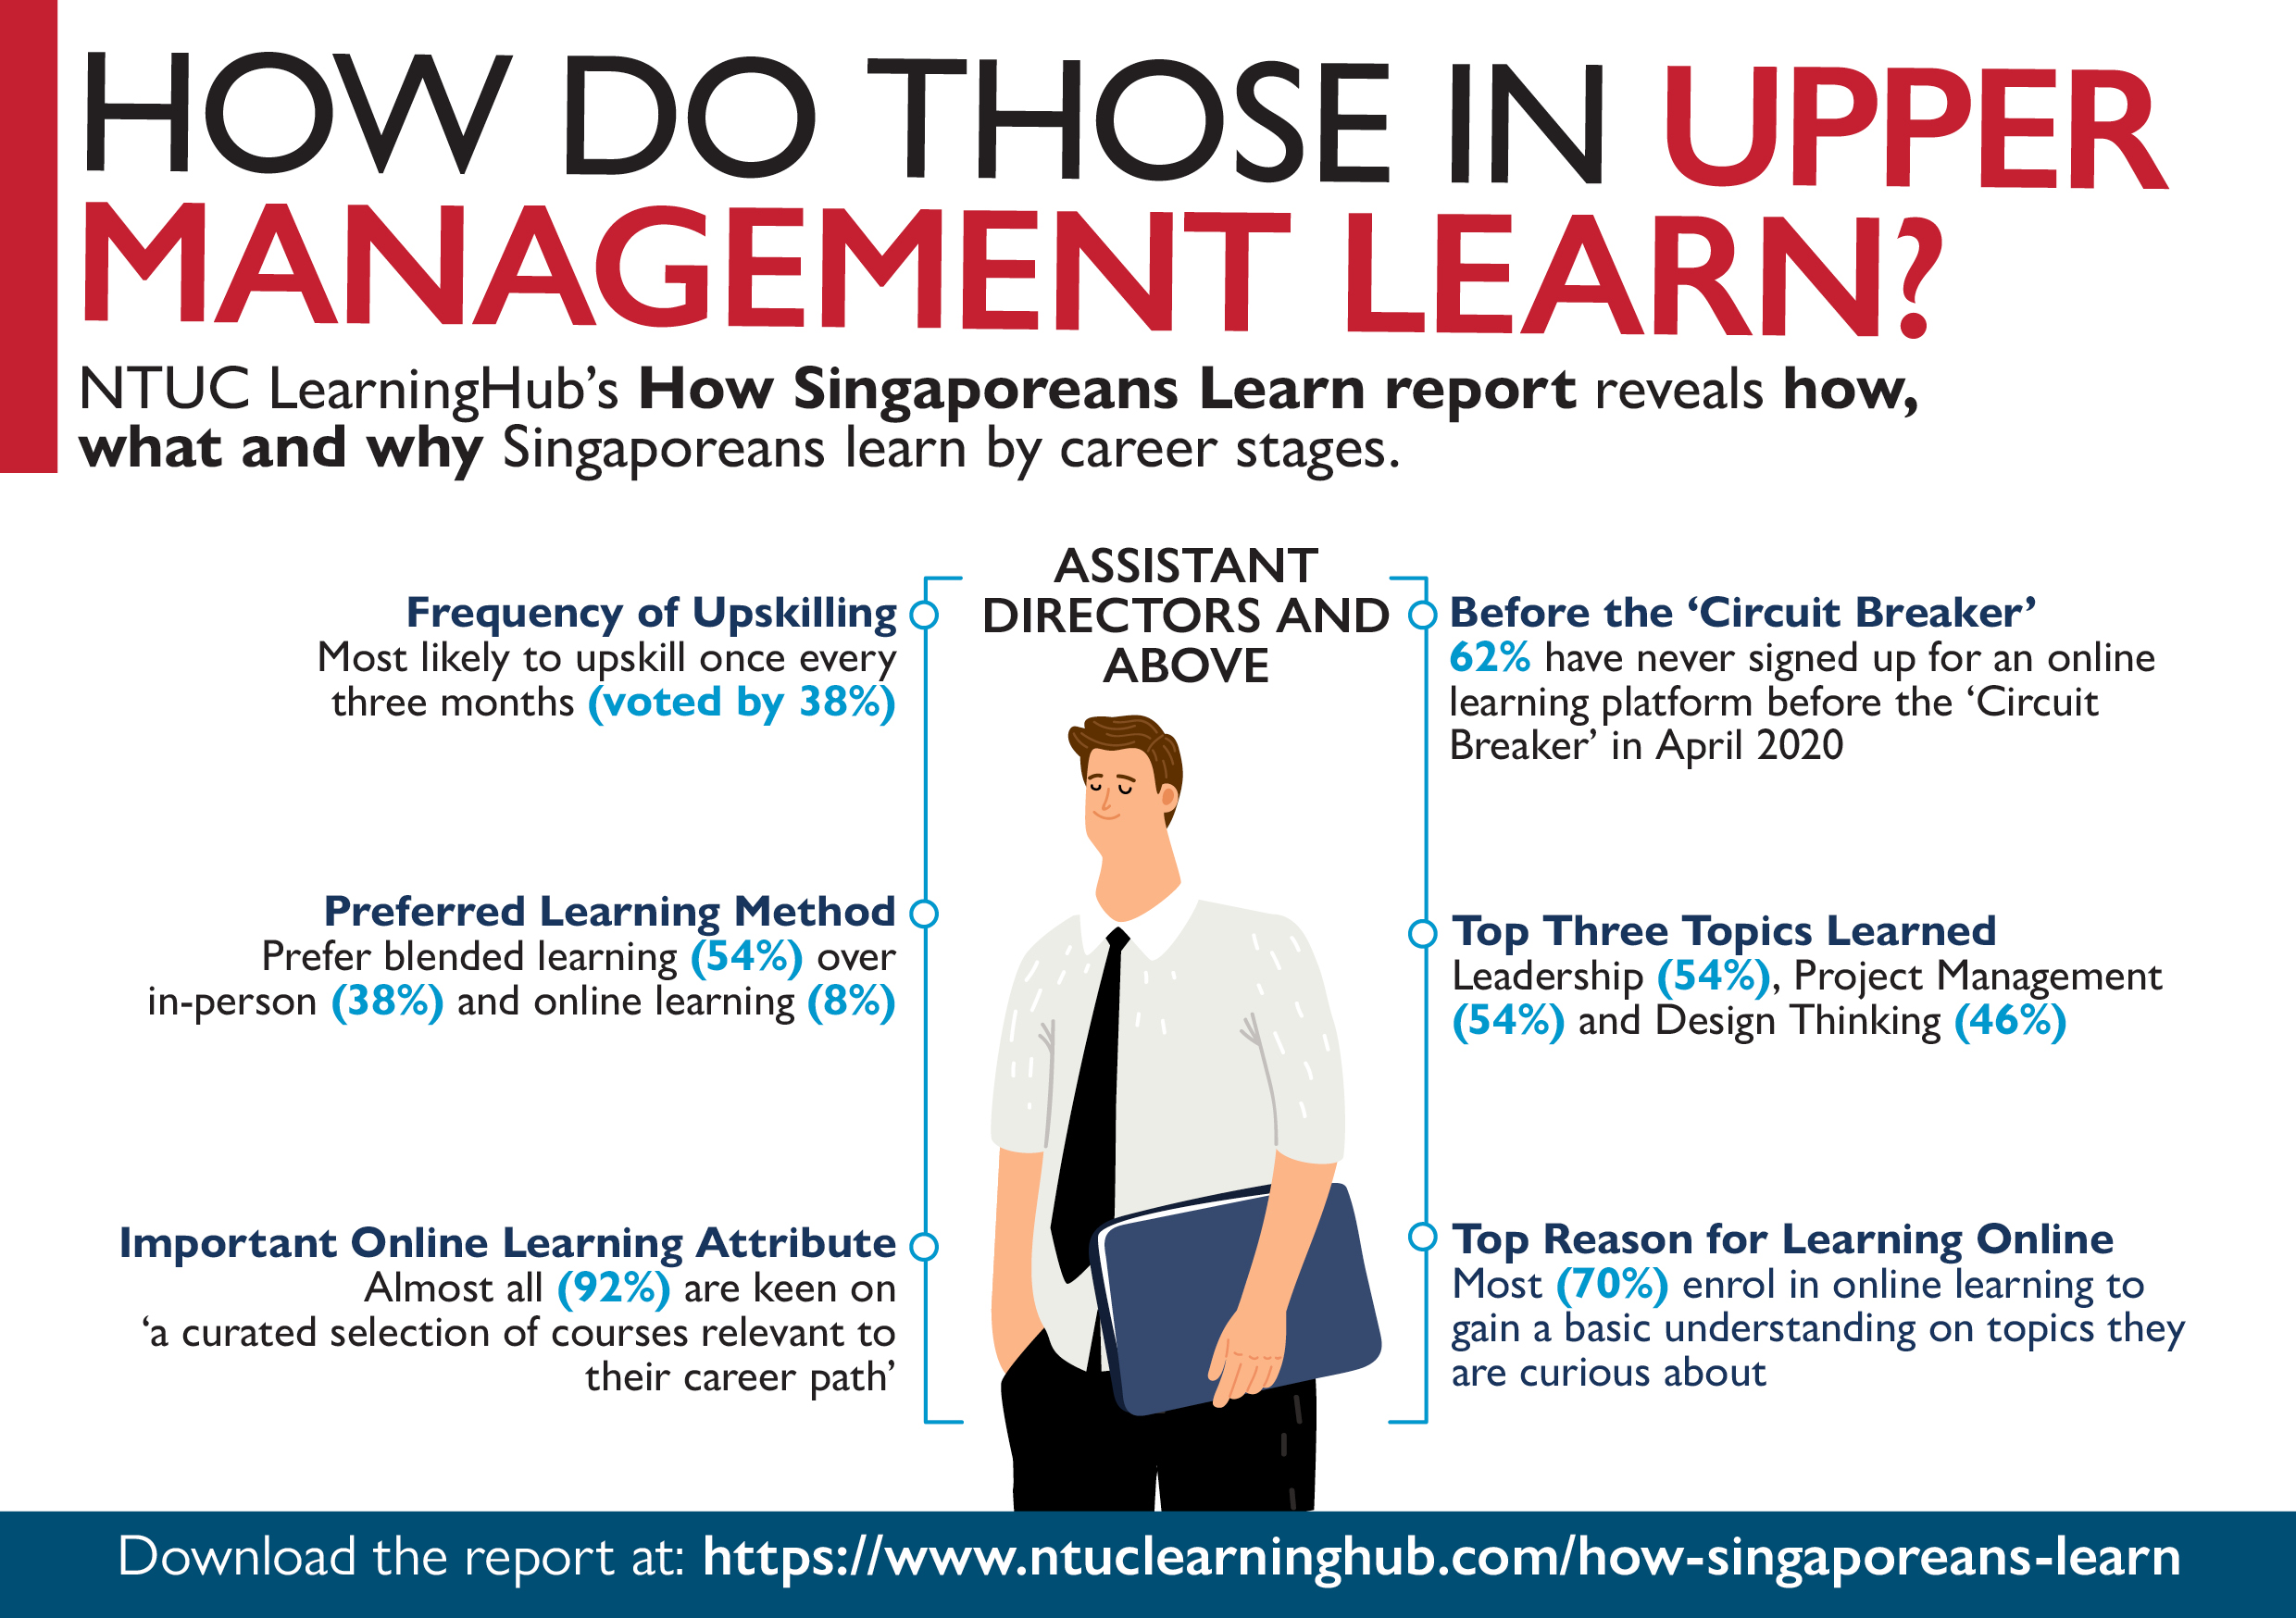 Those in Upper Management Are Least Likely to Learn Online; Upskilling Should Be Led from the Top Says NTUC LearningHub